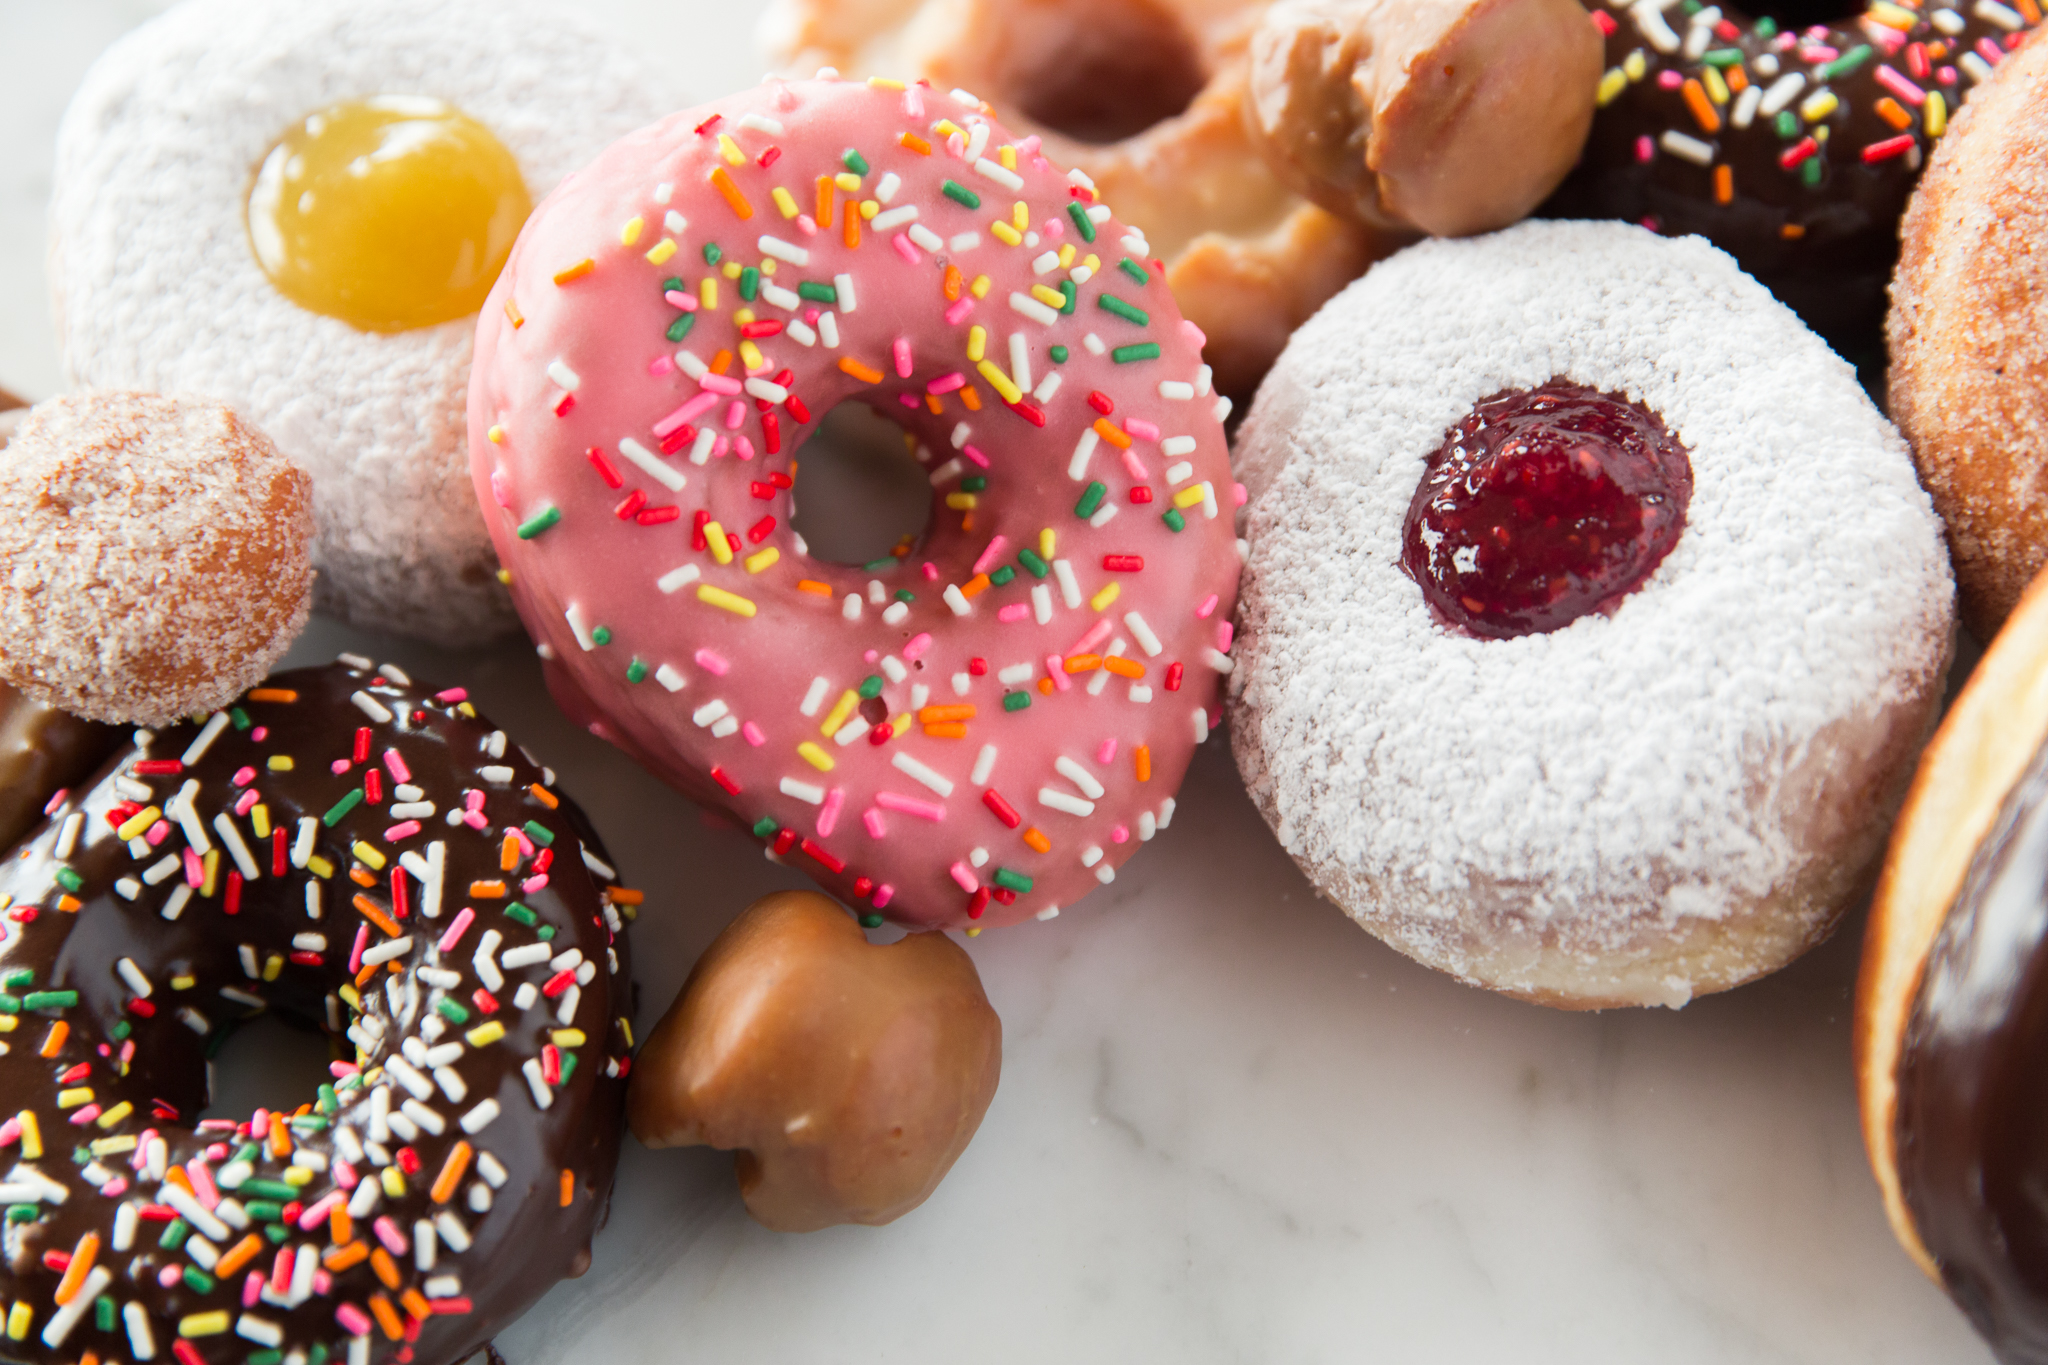 How to Make Foolproof Fluffy Yeasted Donuts at Home